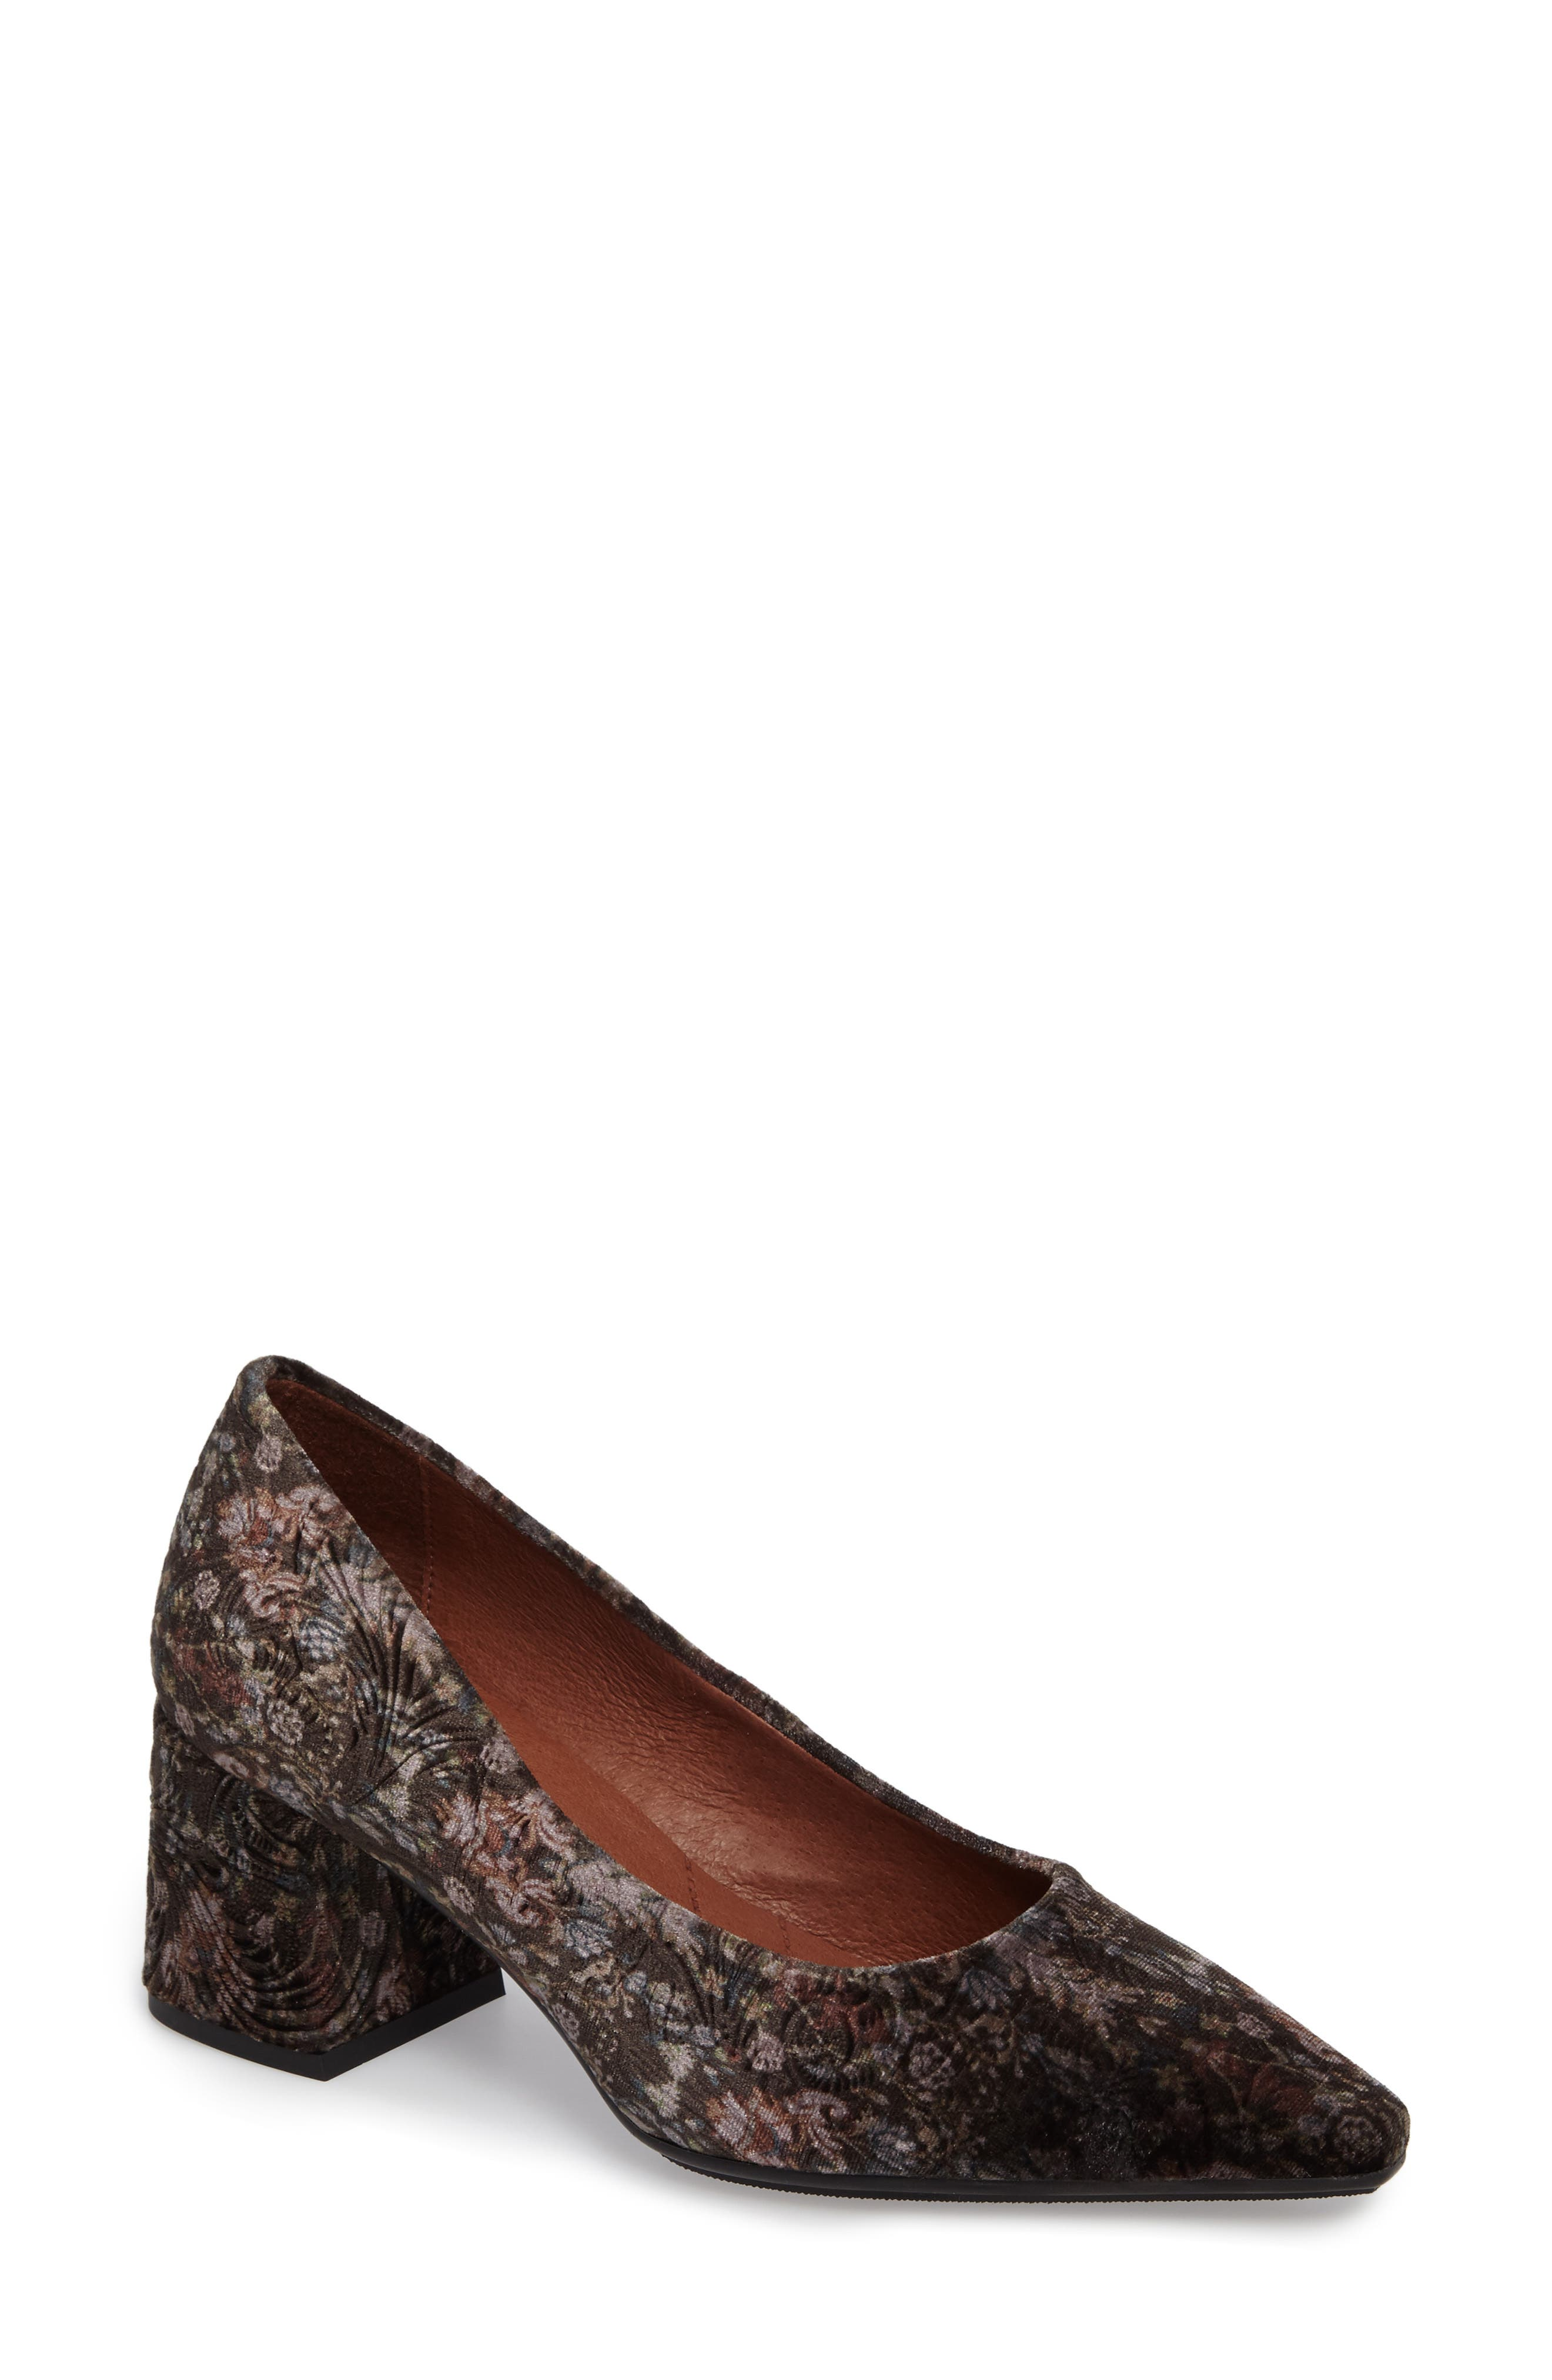 Carson Pointy Toe Pump,                             Main thumbnail 1, color,                             Grey Leather